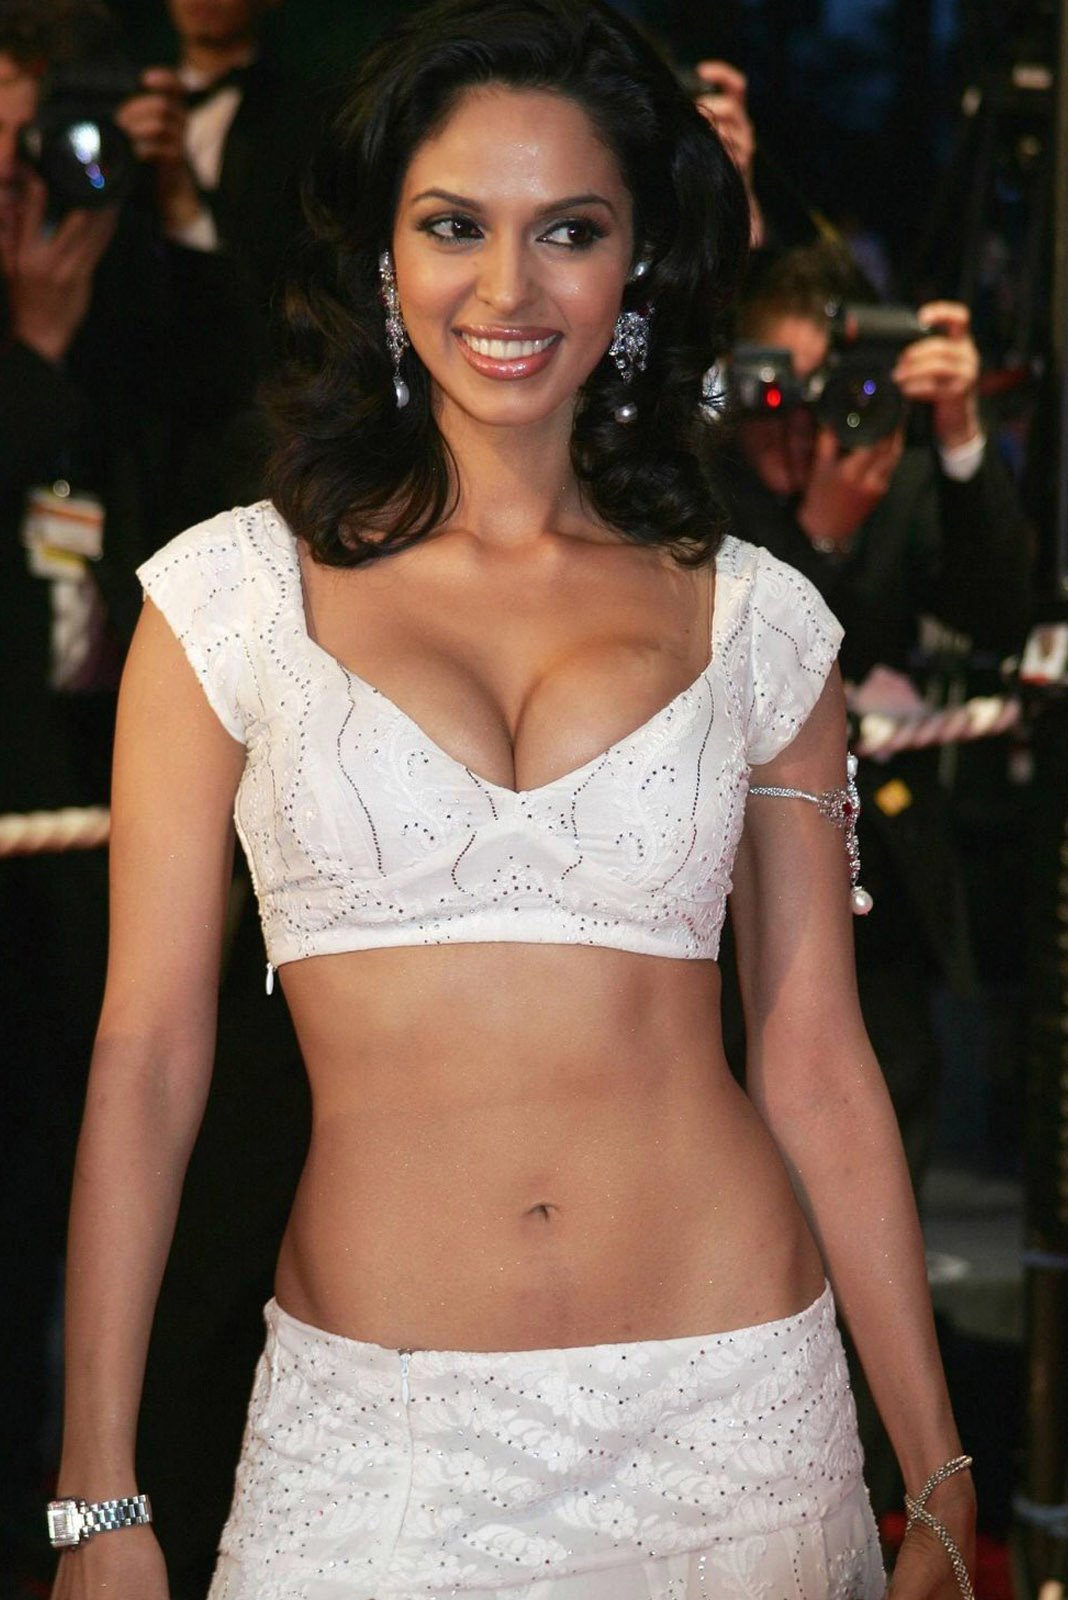 mallika sherawat body measurement